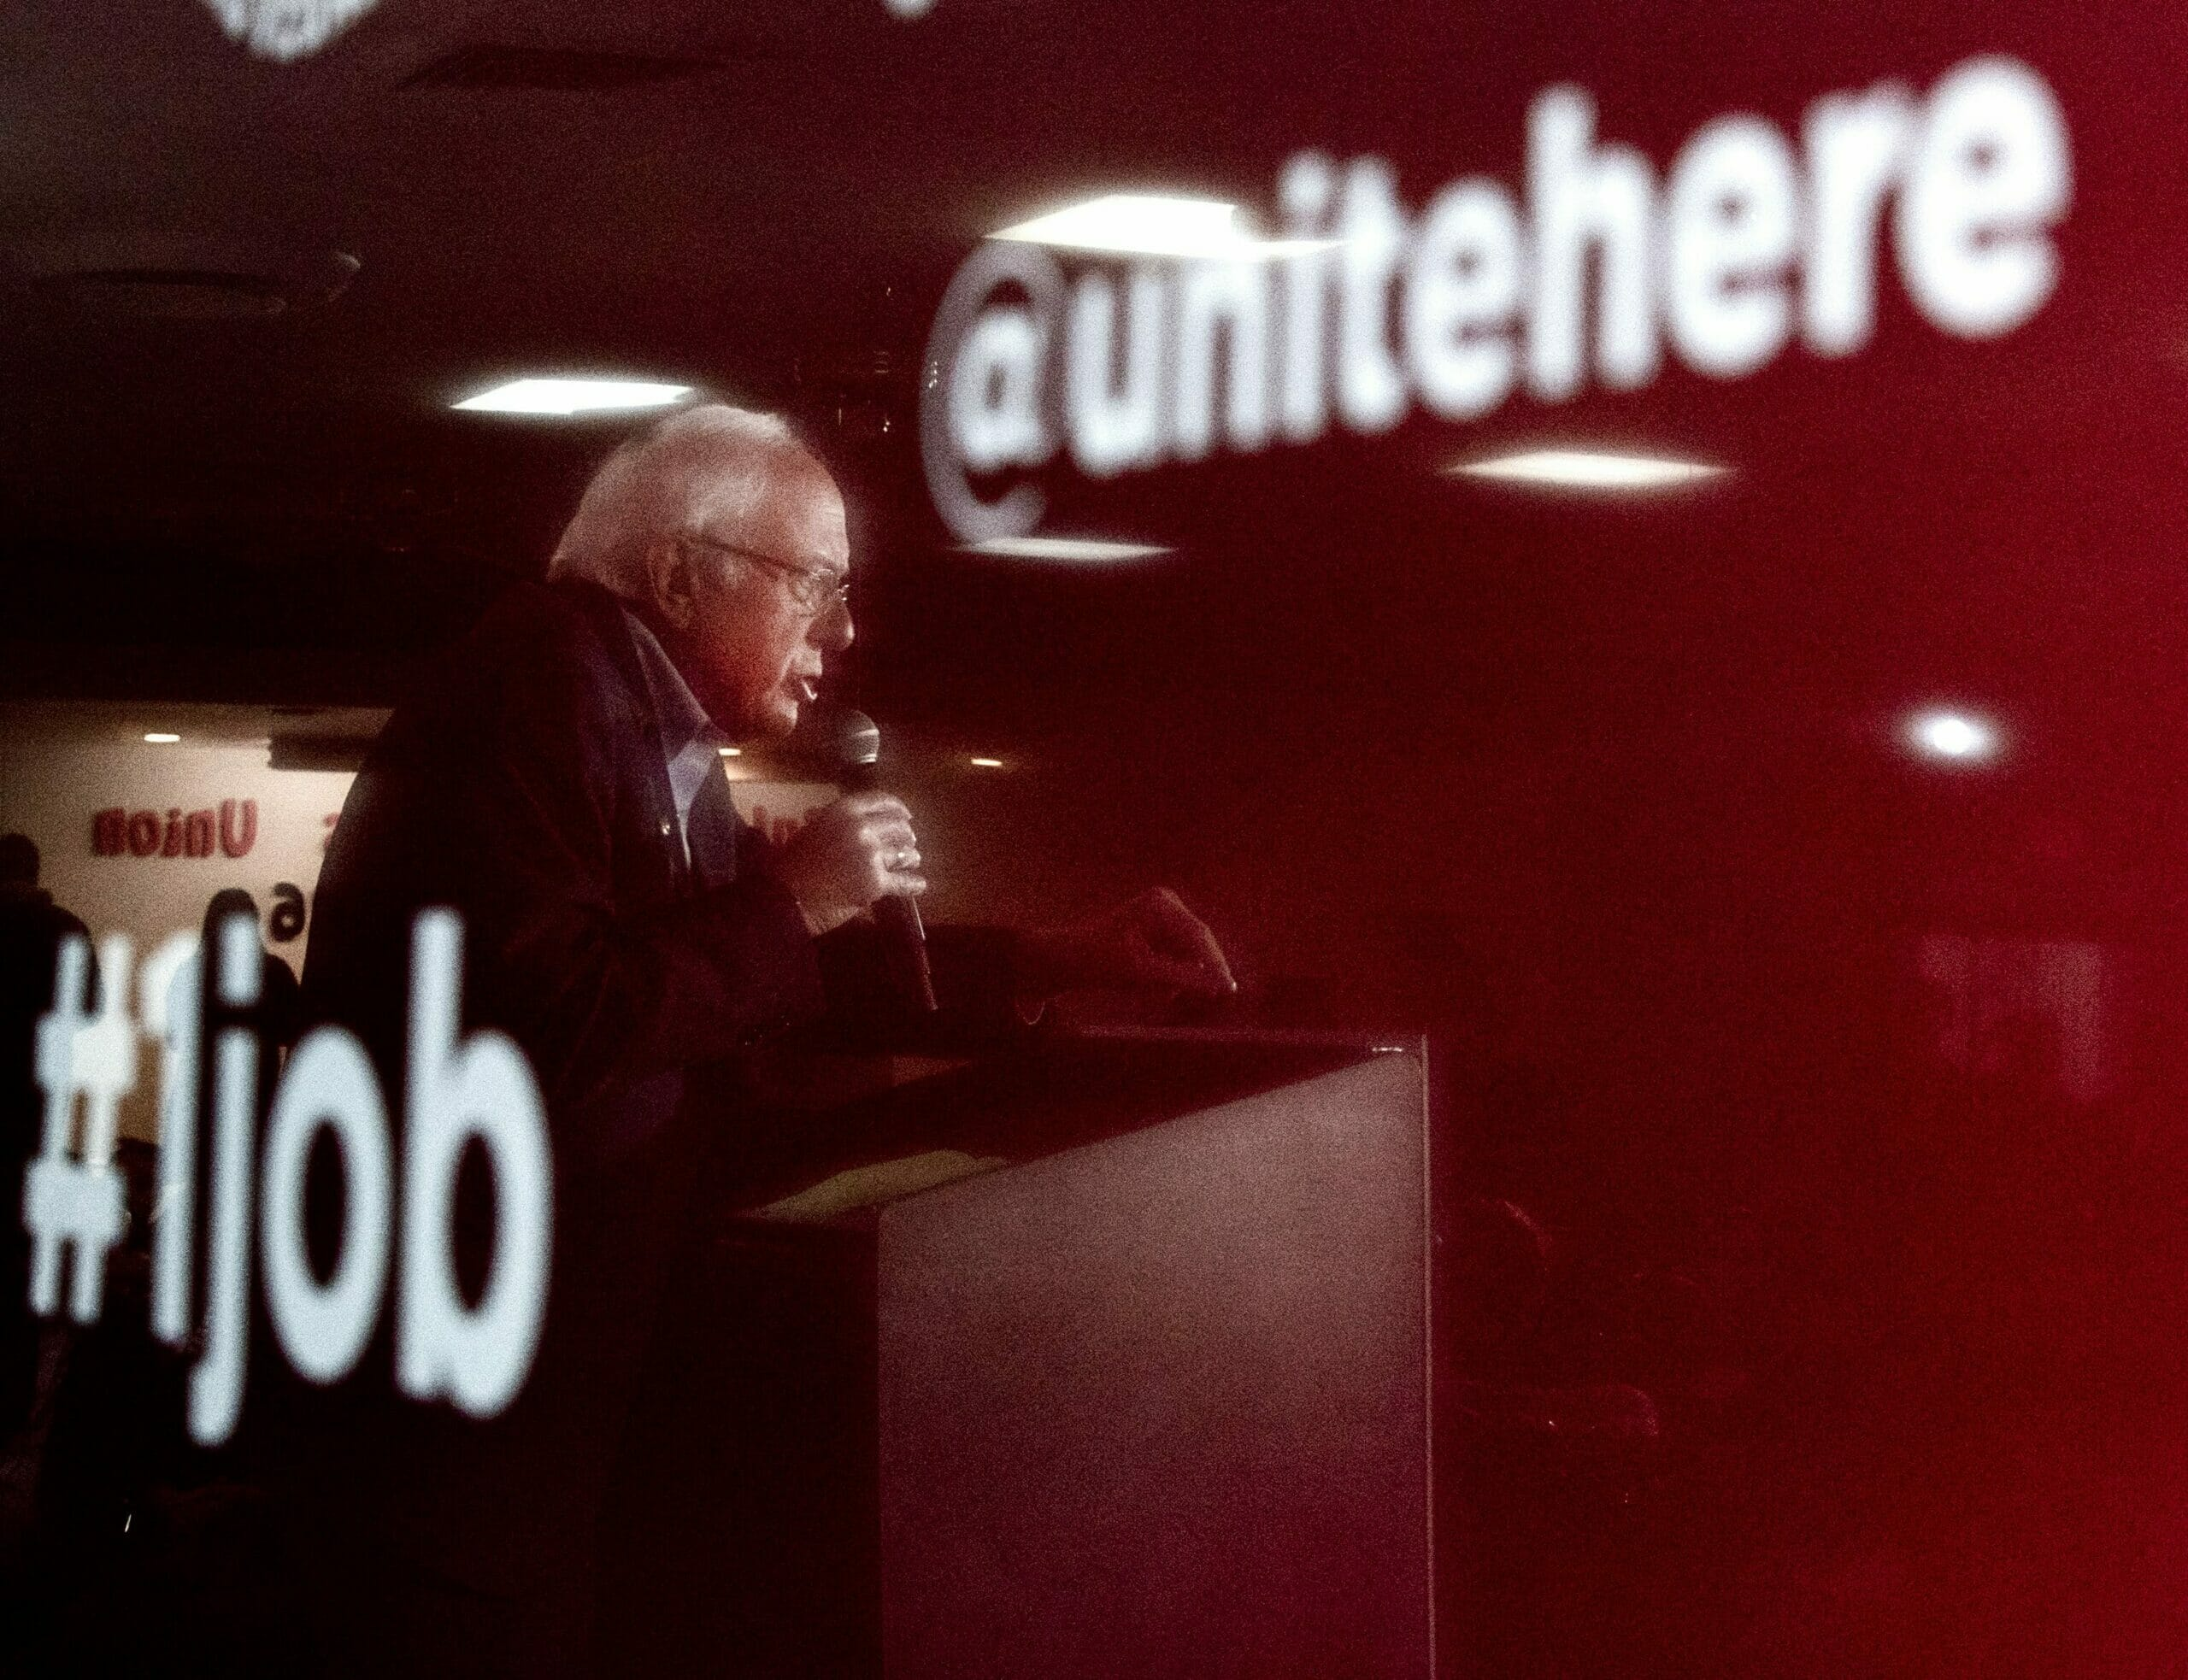 Bernie Sanders at the podium of a Culinary Union event